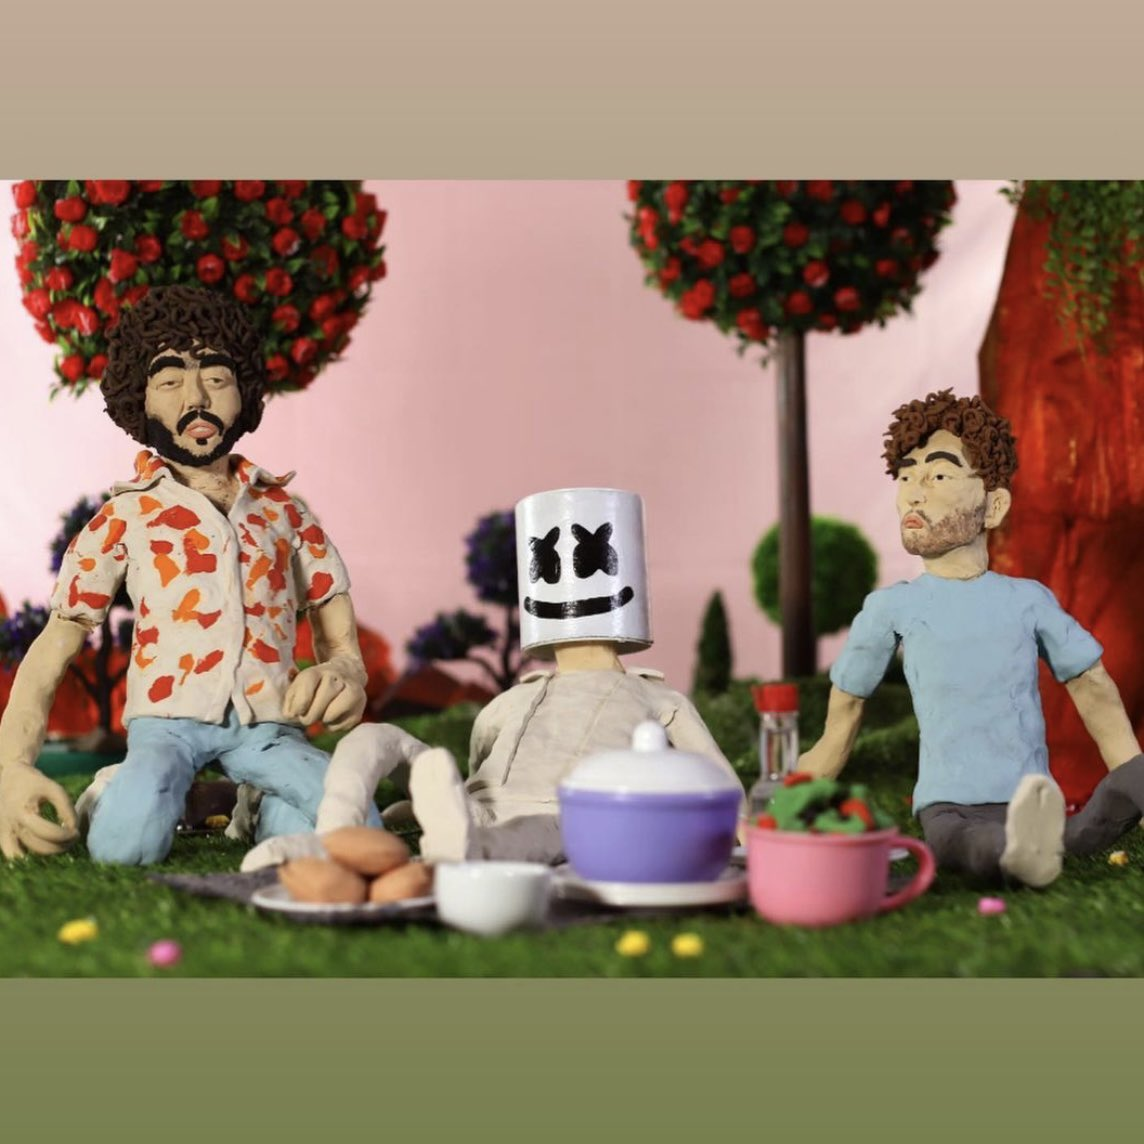 ever seen a man made of actual clay having a bbq with his friends?